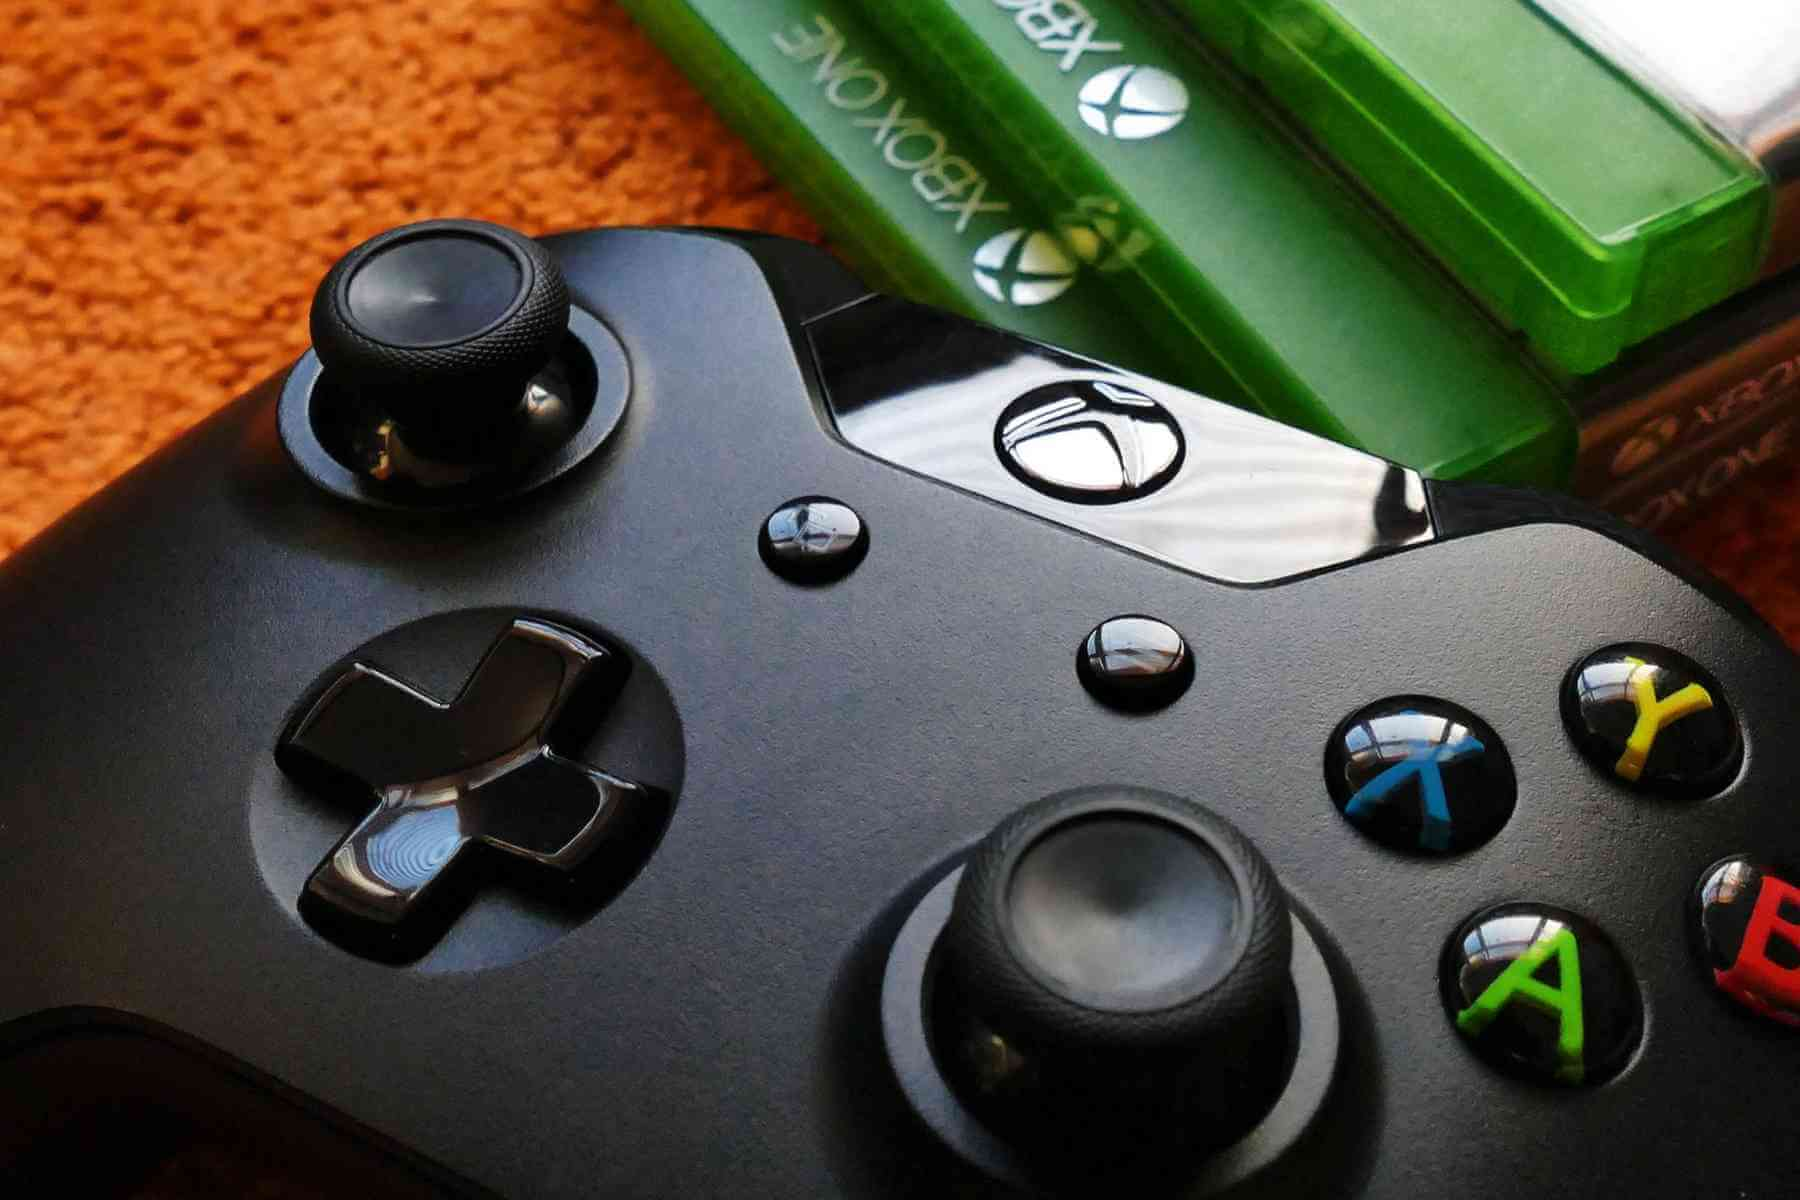 xbox troubleshooter xbox controller goes to player 2 on pc